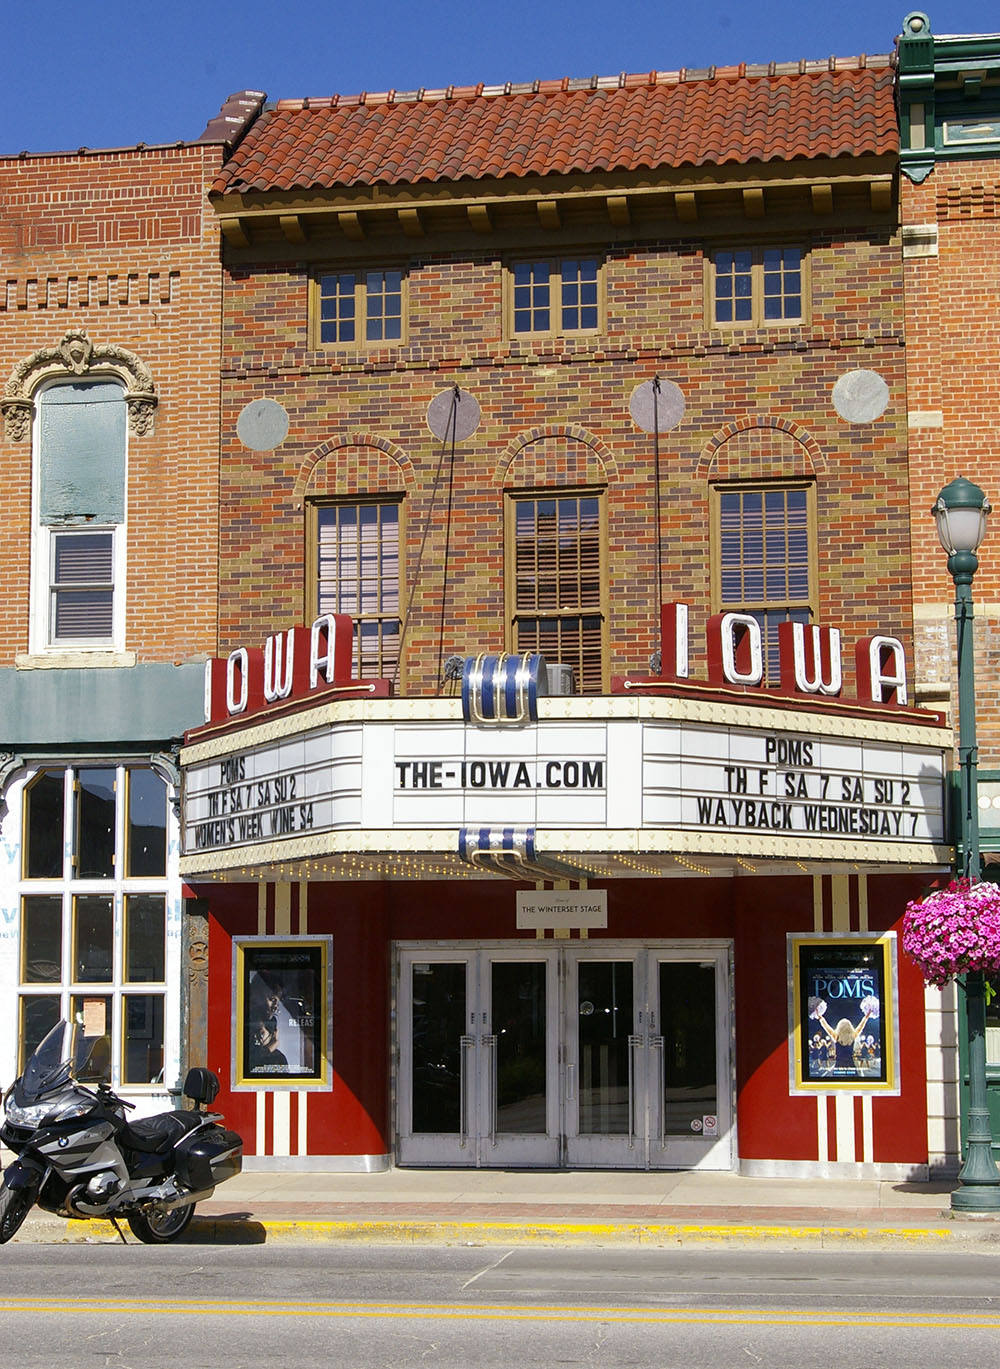 Brick exterior and white and red marquee of the Iowa Theater in Winterset, Iowa